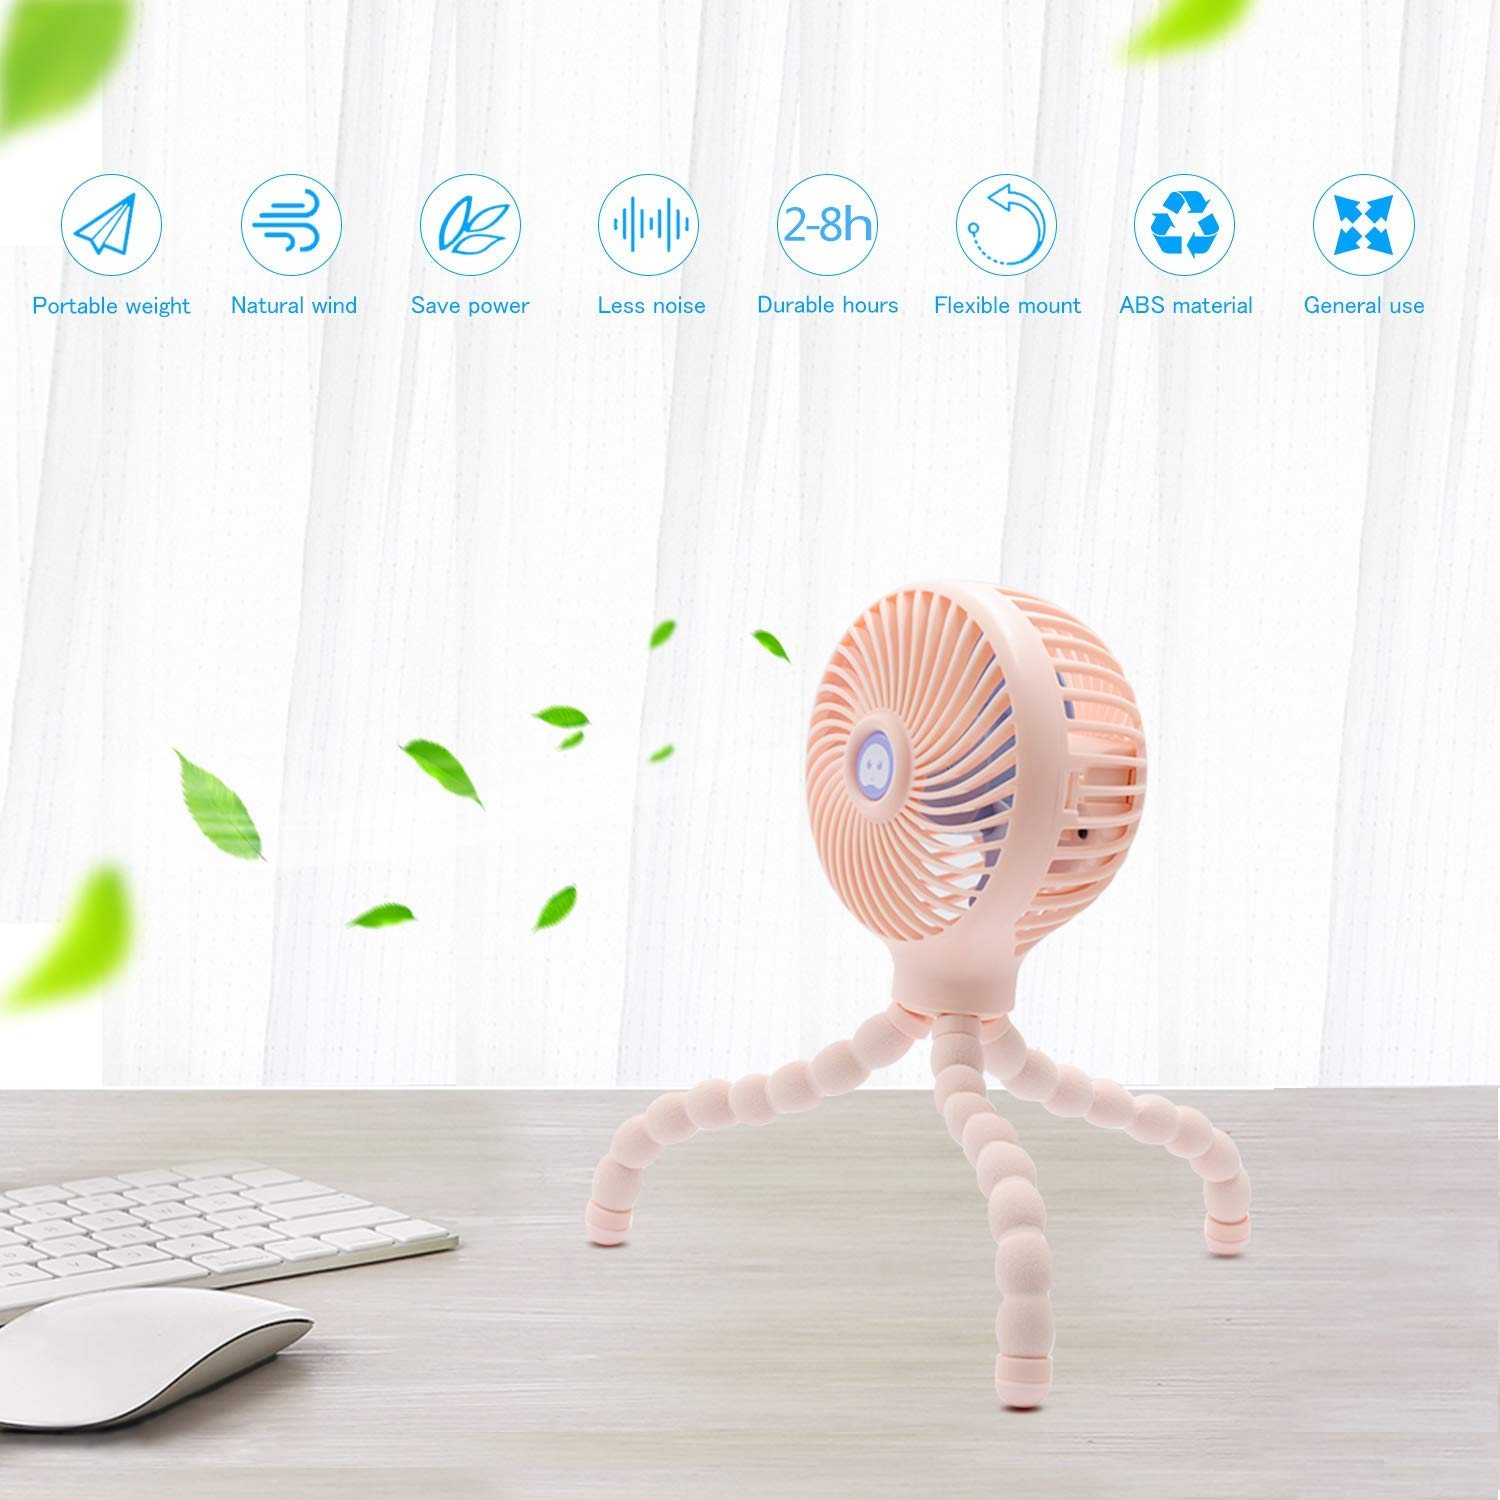 White Mini Stroller Fan,Personal Portable Desk Handheld Baby Bed Fan with USB Rechargeable Battery Operated Cooling Folding Electric Table Fan for Office Room//Baby Room//Outdoor